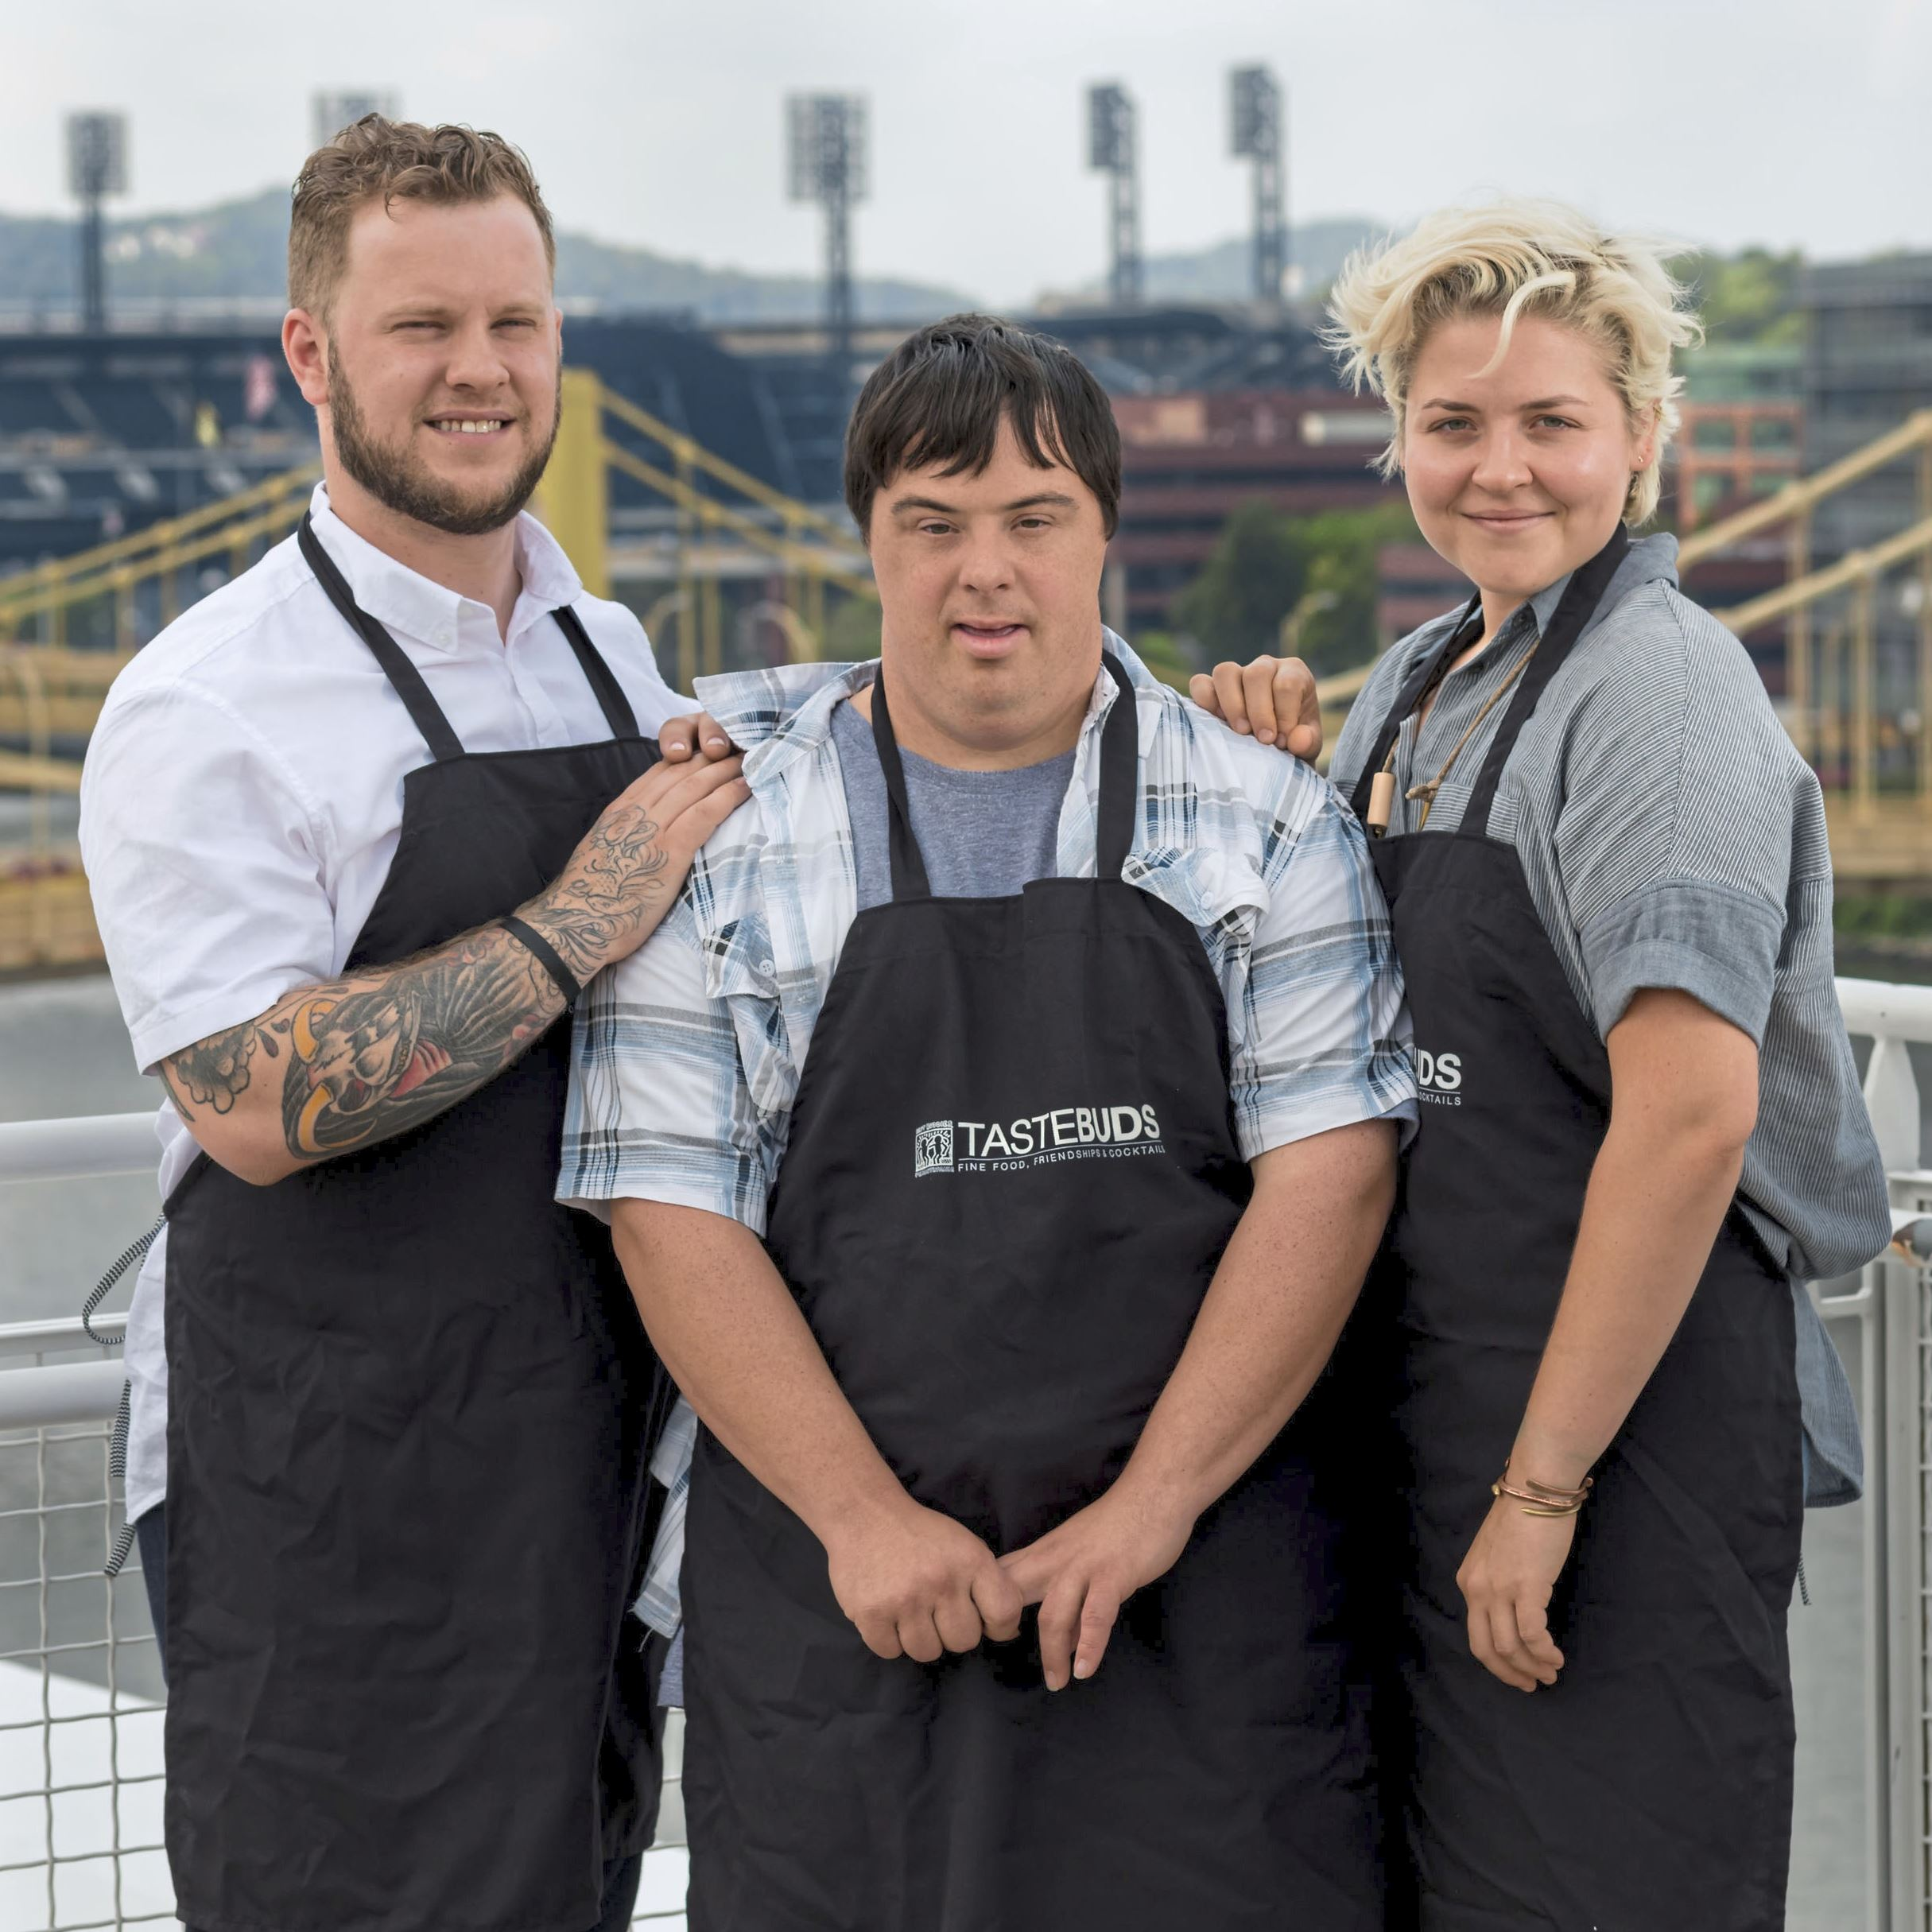 vandal tastebuds-2 Joey Hilty, left, and Csilla Thackray of Vandal, right, will cook with John Mozeik (center) at Tastebuds in November.